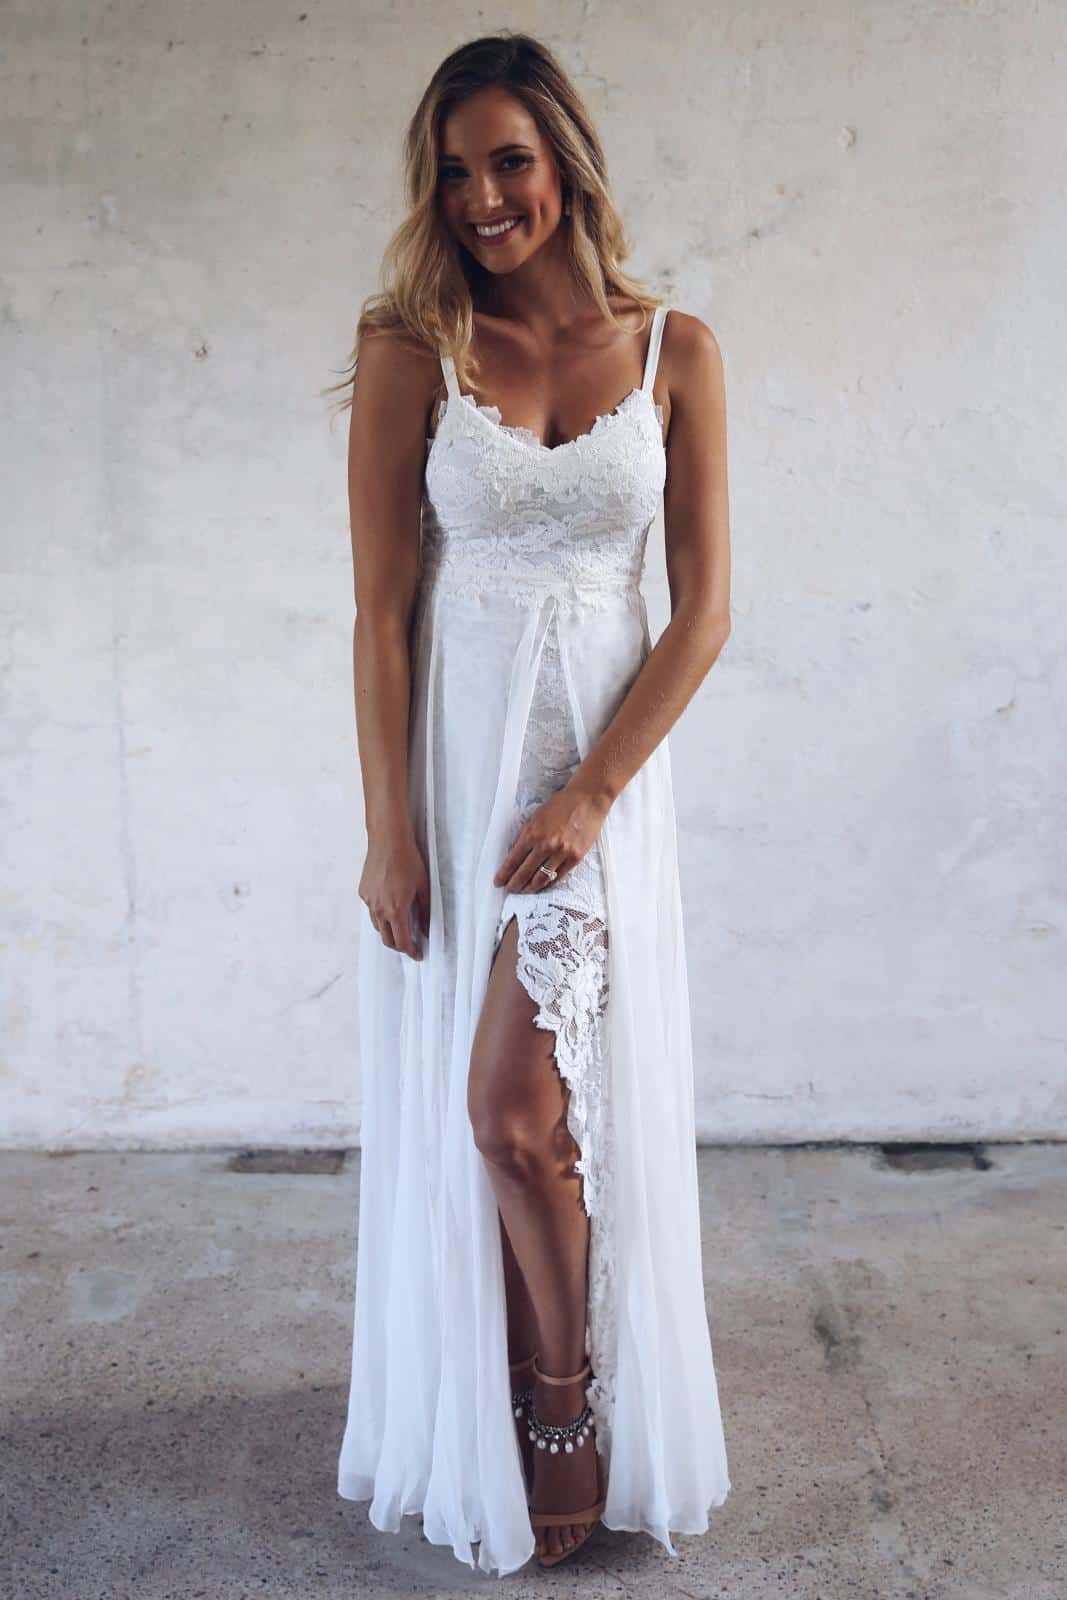 Bohemian Wedding Dresses Inspiration French Lace Dresses Handmade by Grace Loves Lace Hollie 2.0